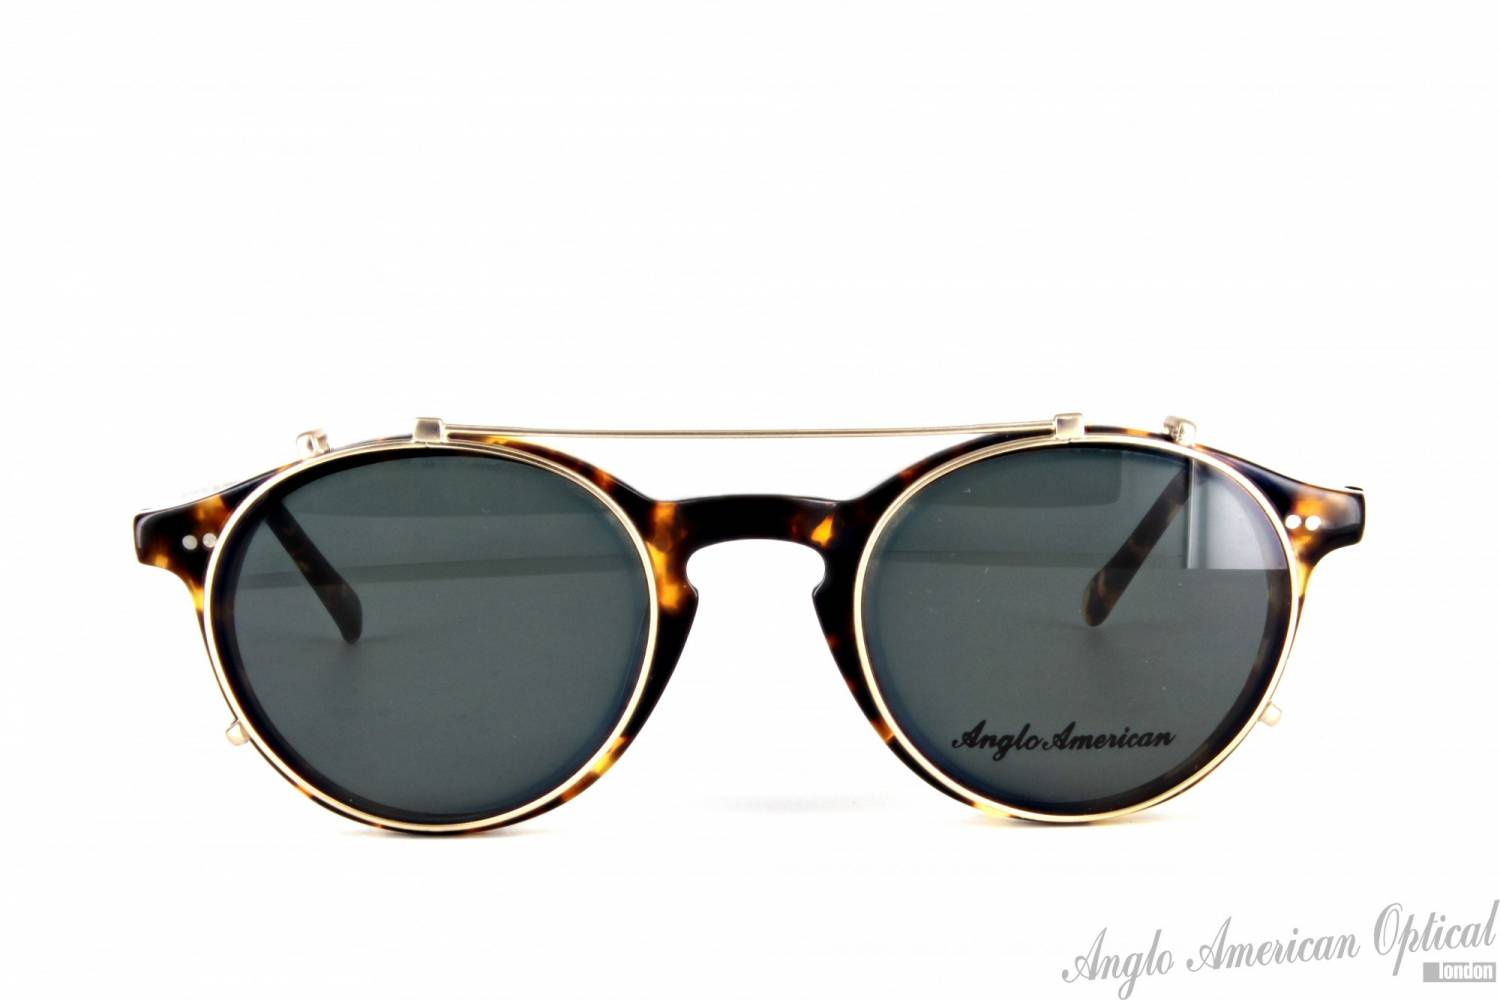 406 47 Clip on Sunglass